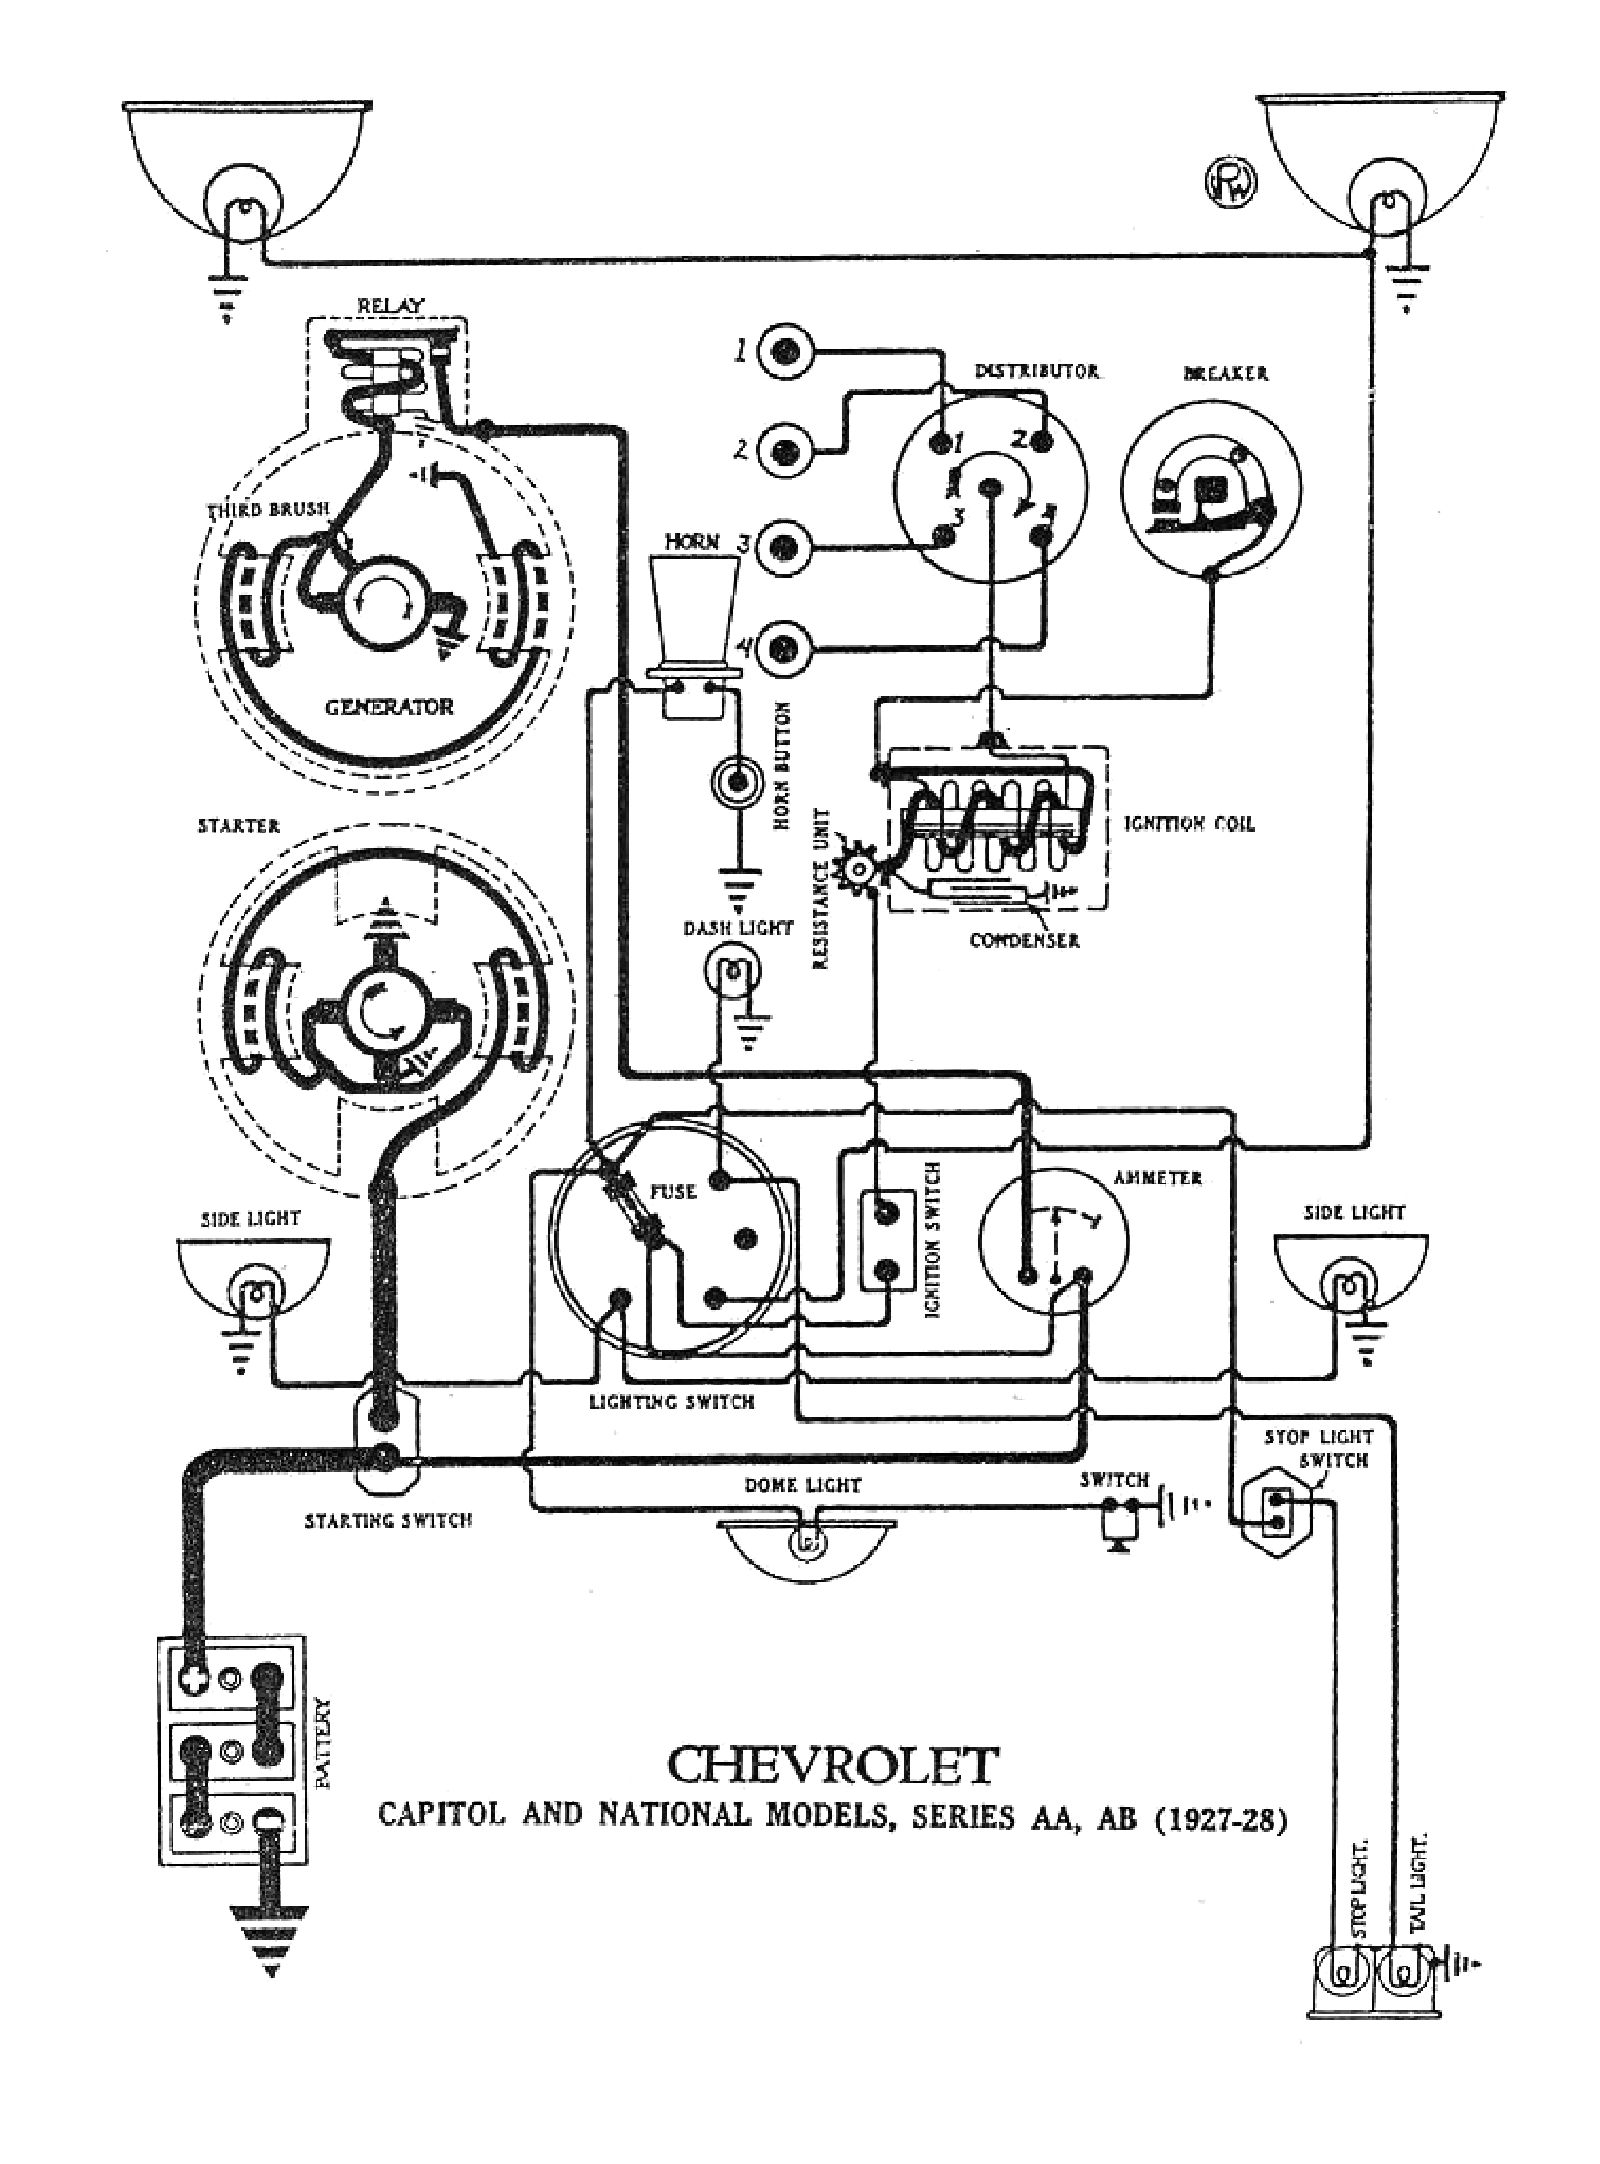 General Electric Washer Diagram Free Download Wiring Diagram